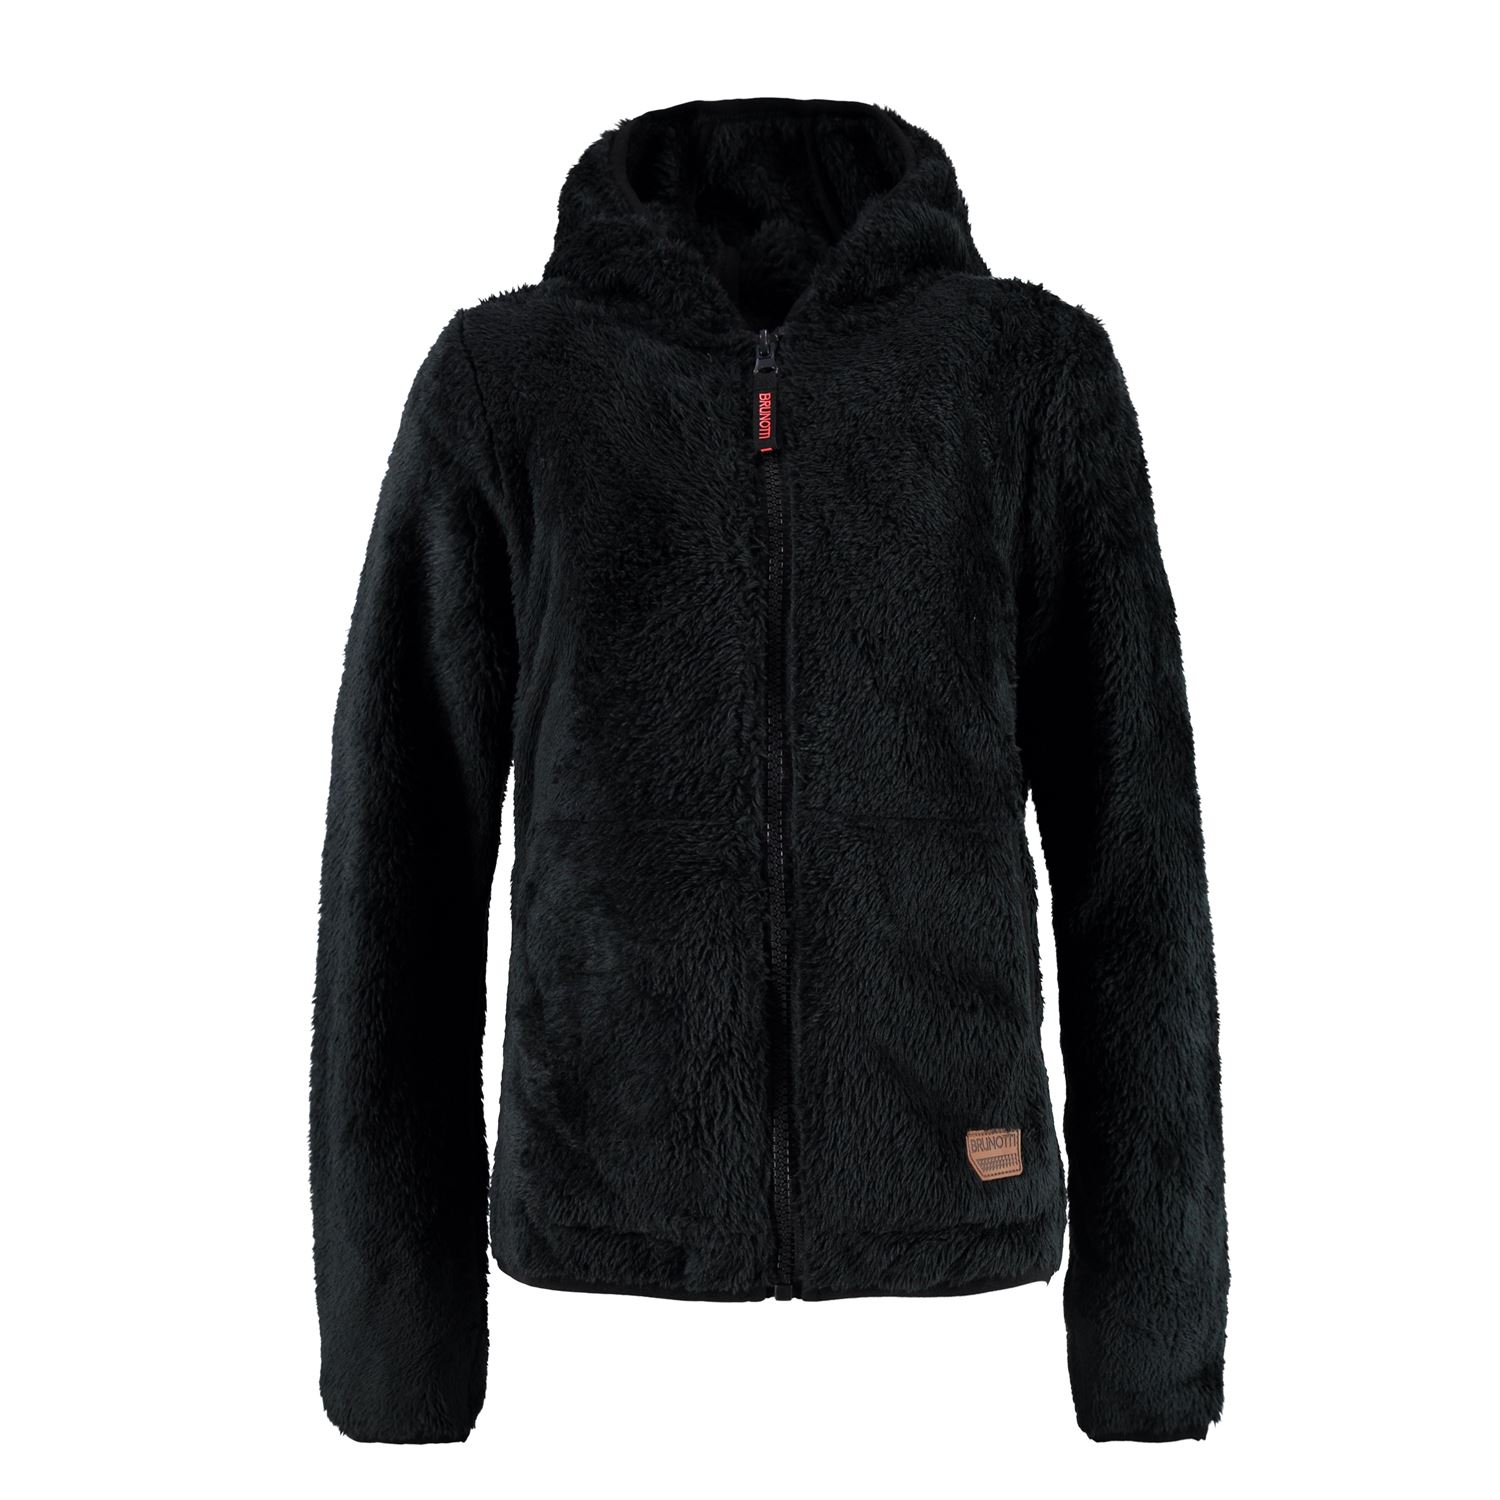 Brunotti Ycerra JR Girls Fleece